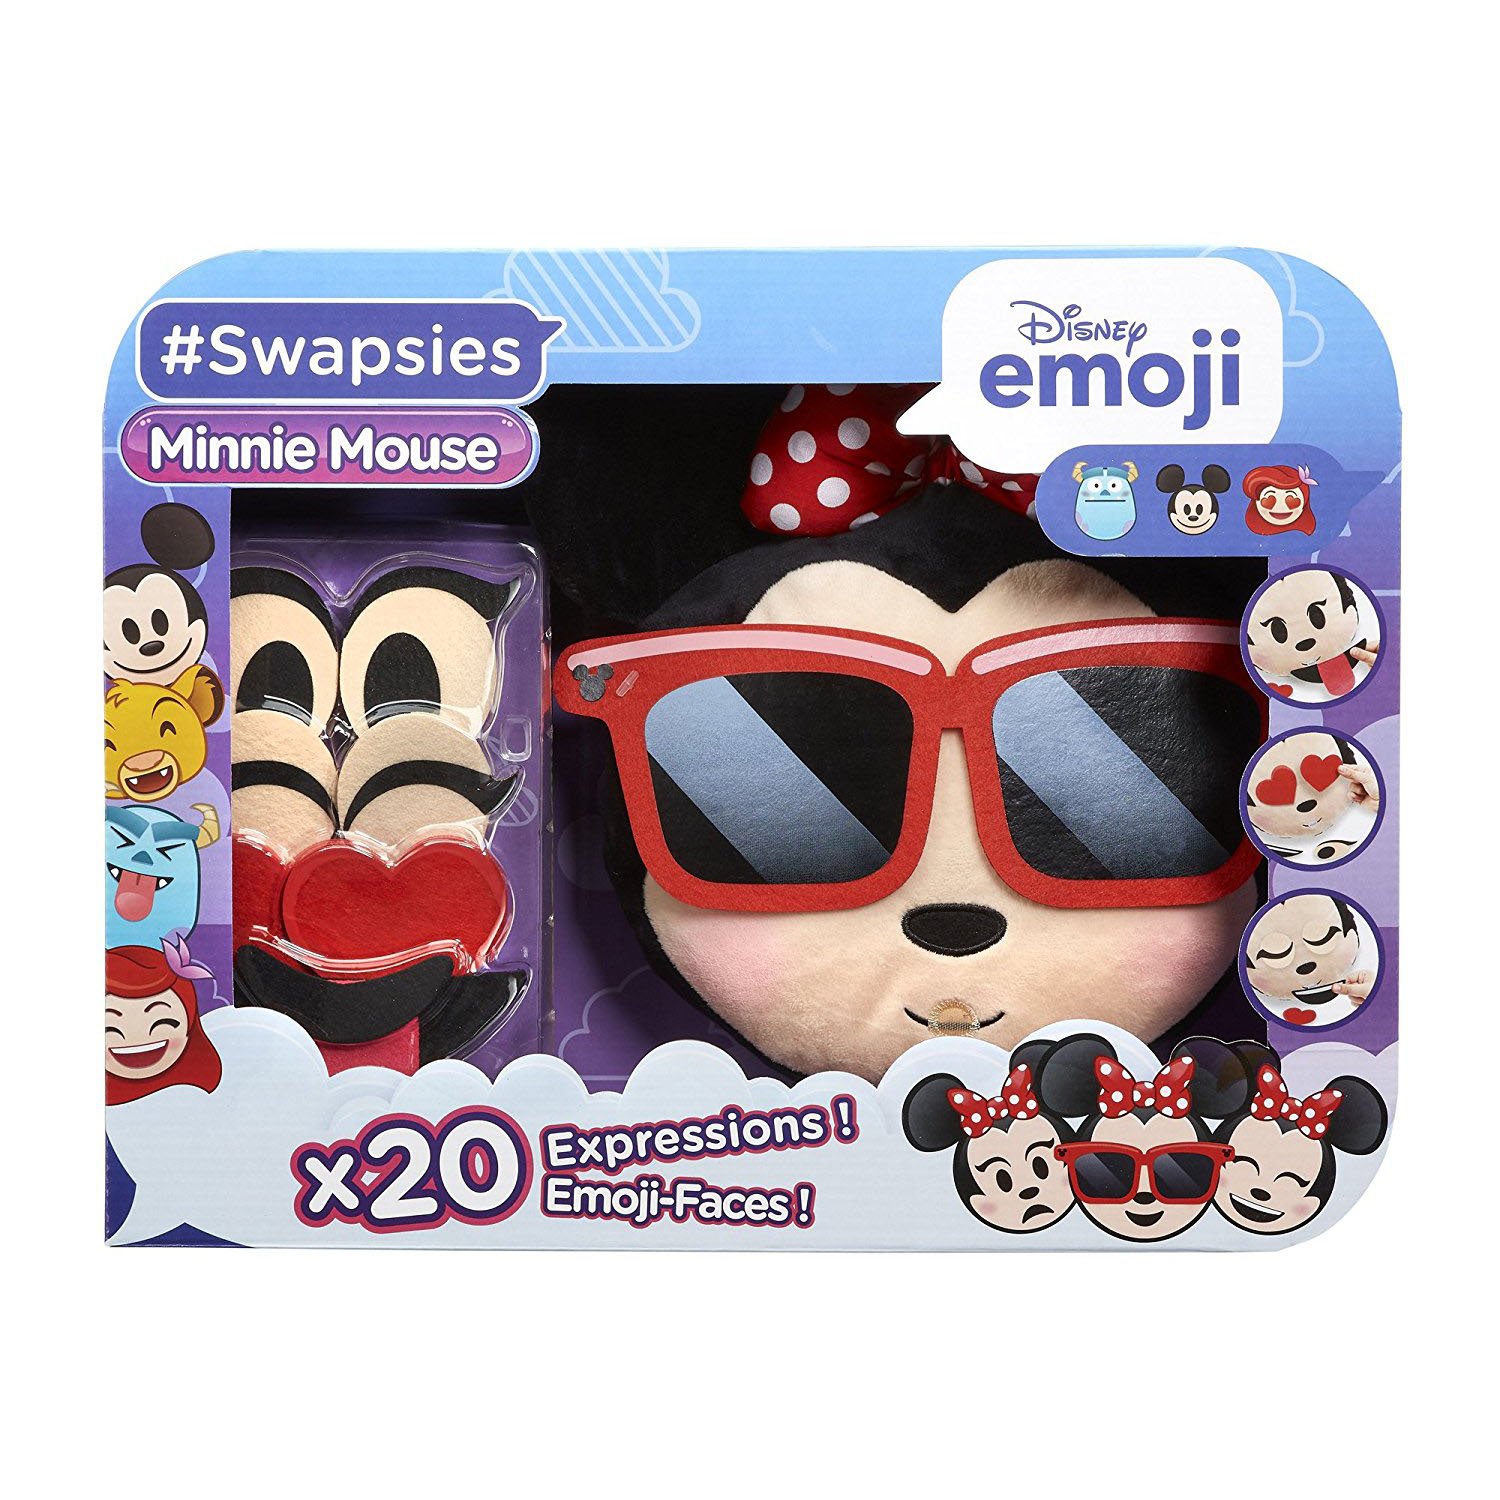 Disney Emoji Swapsies Minnie Mouse Plush Toy